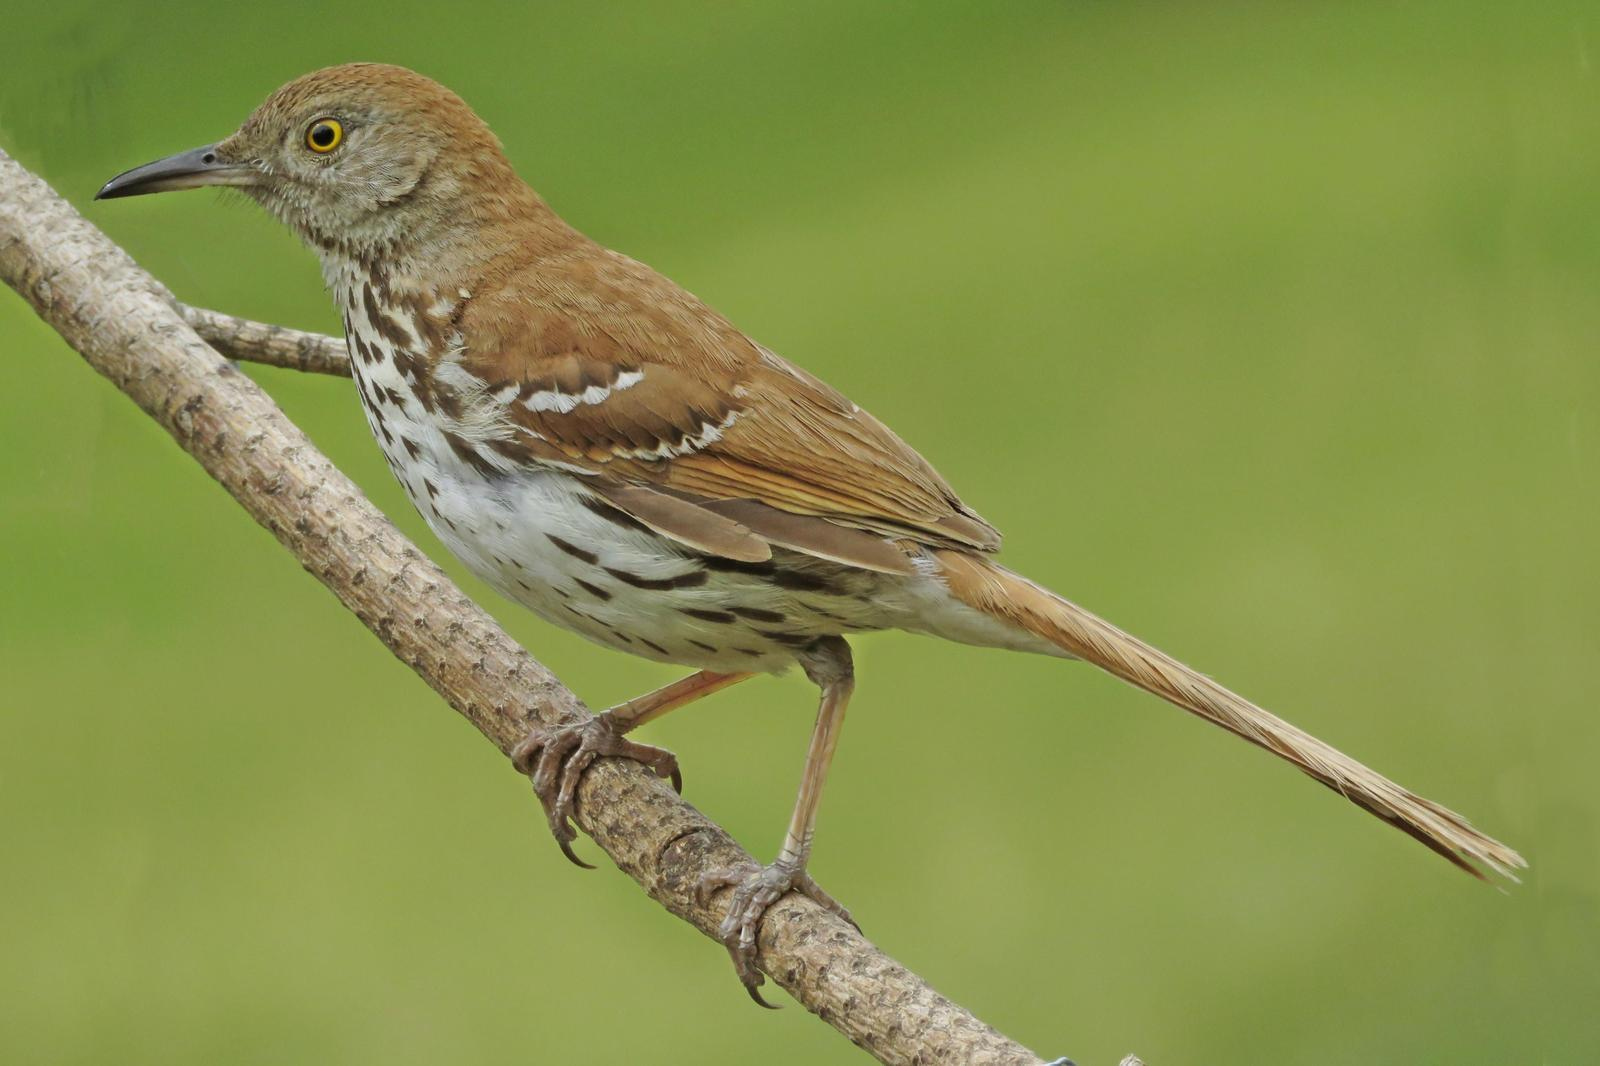 Brown Thrasher Photo by Bob Neugebauer